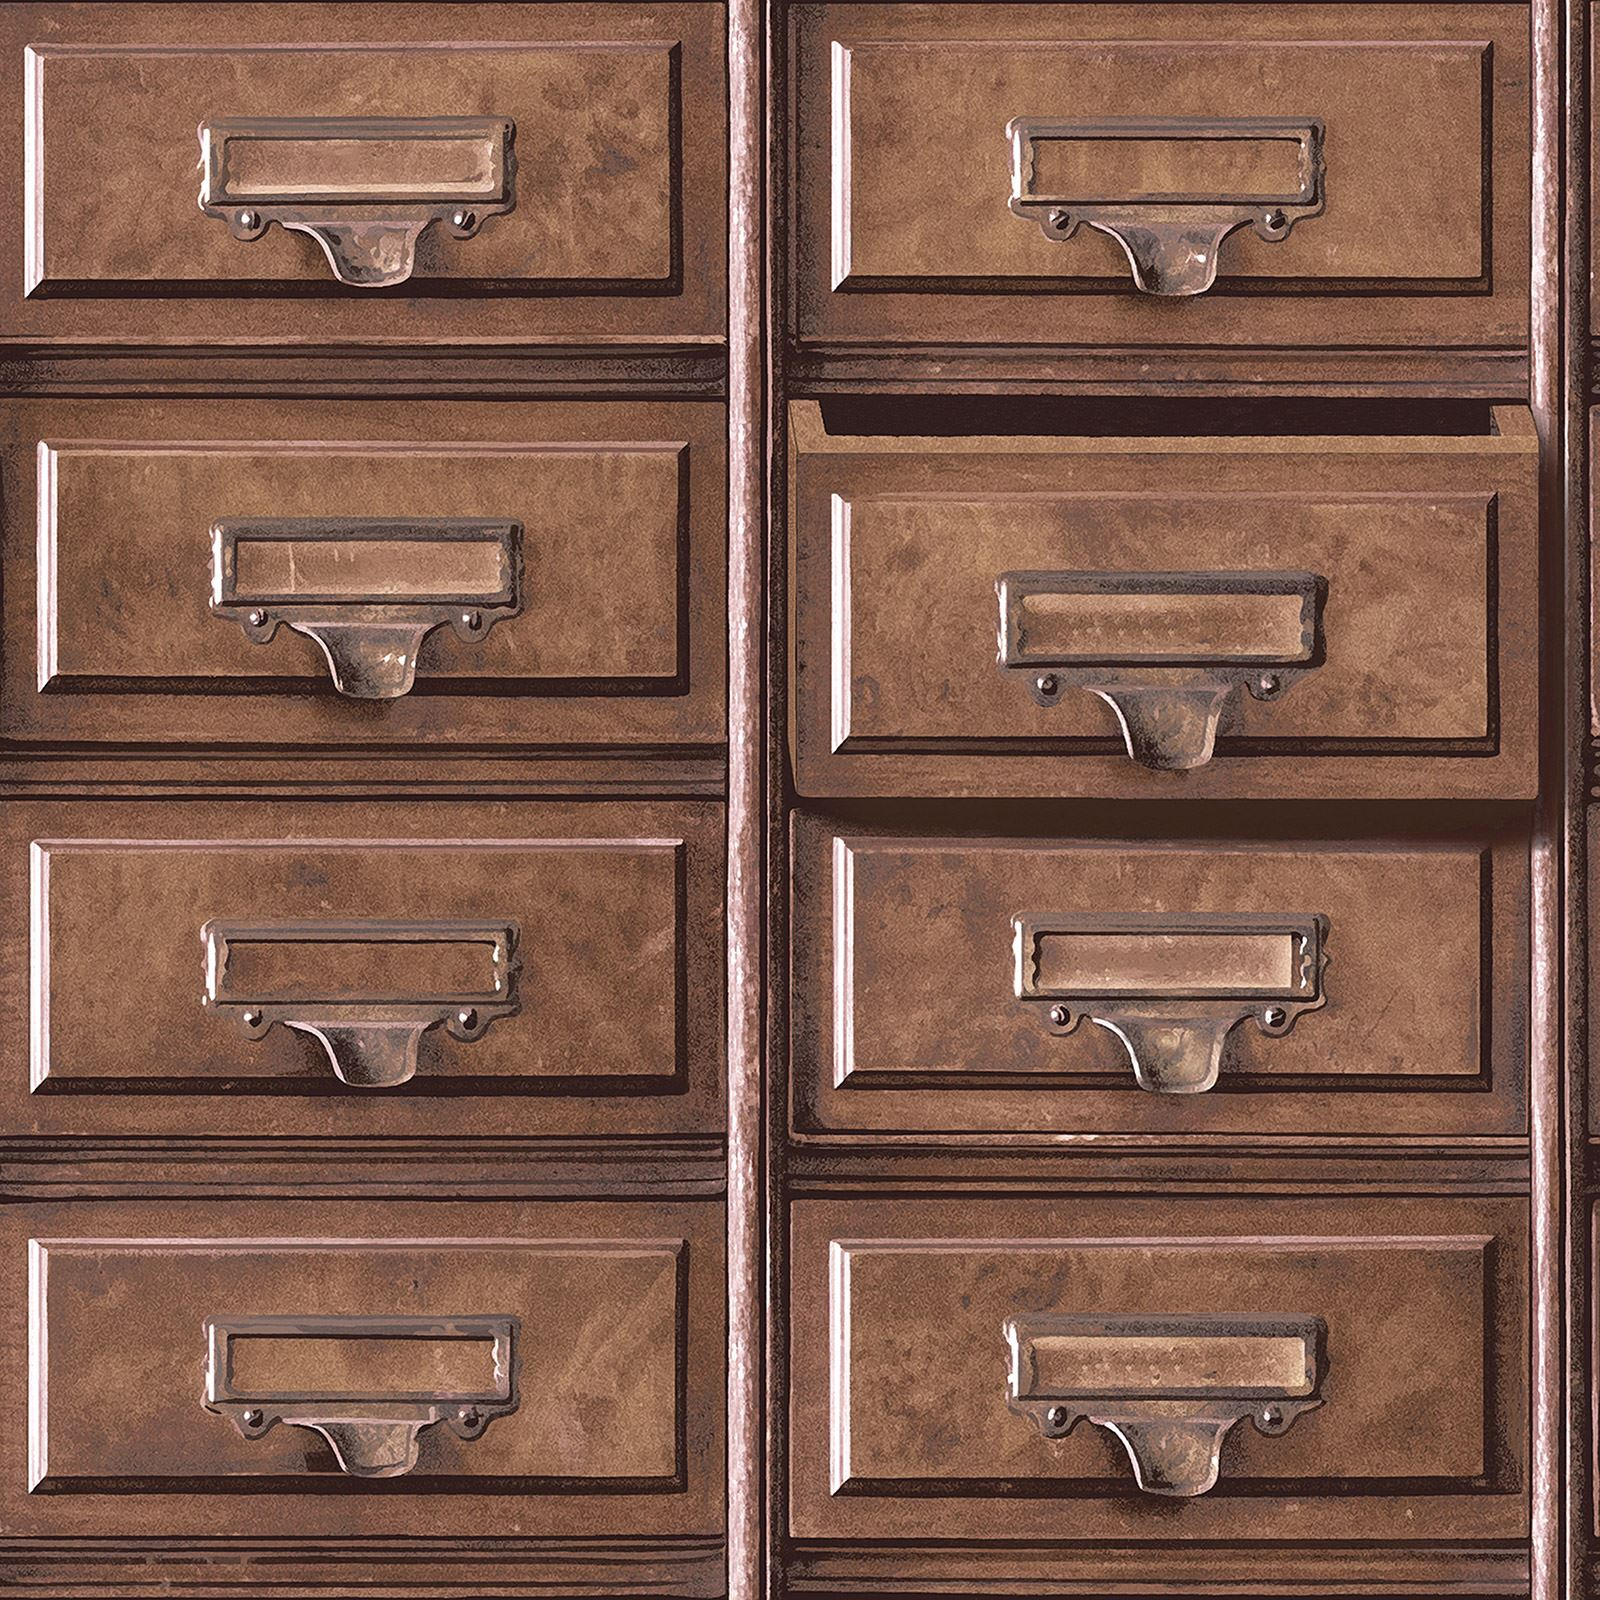 holden vintage drawers and suitcase wallpaper feature wall. Black Bedroom Furniture Sets. Home Design Ideas